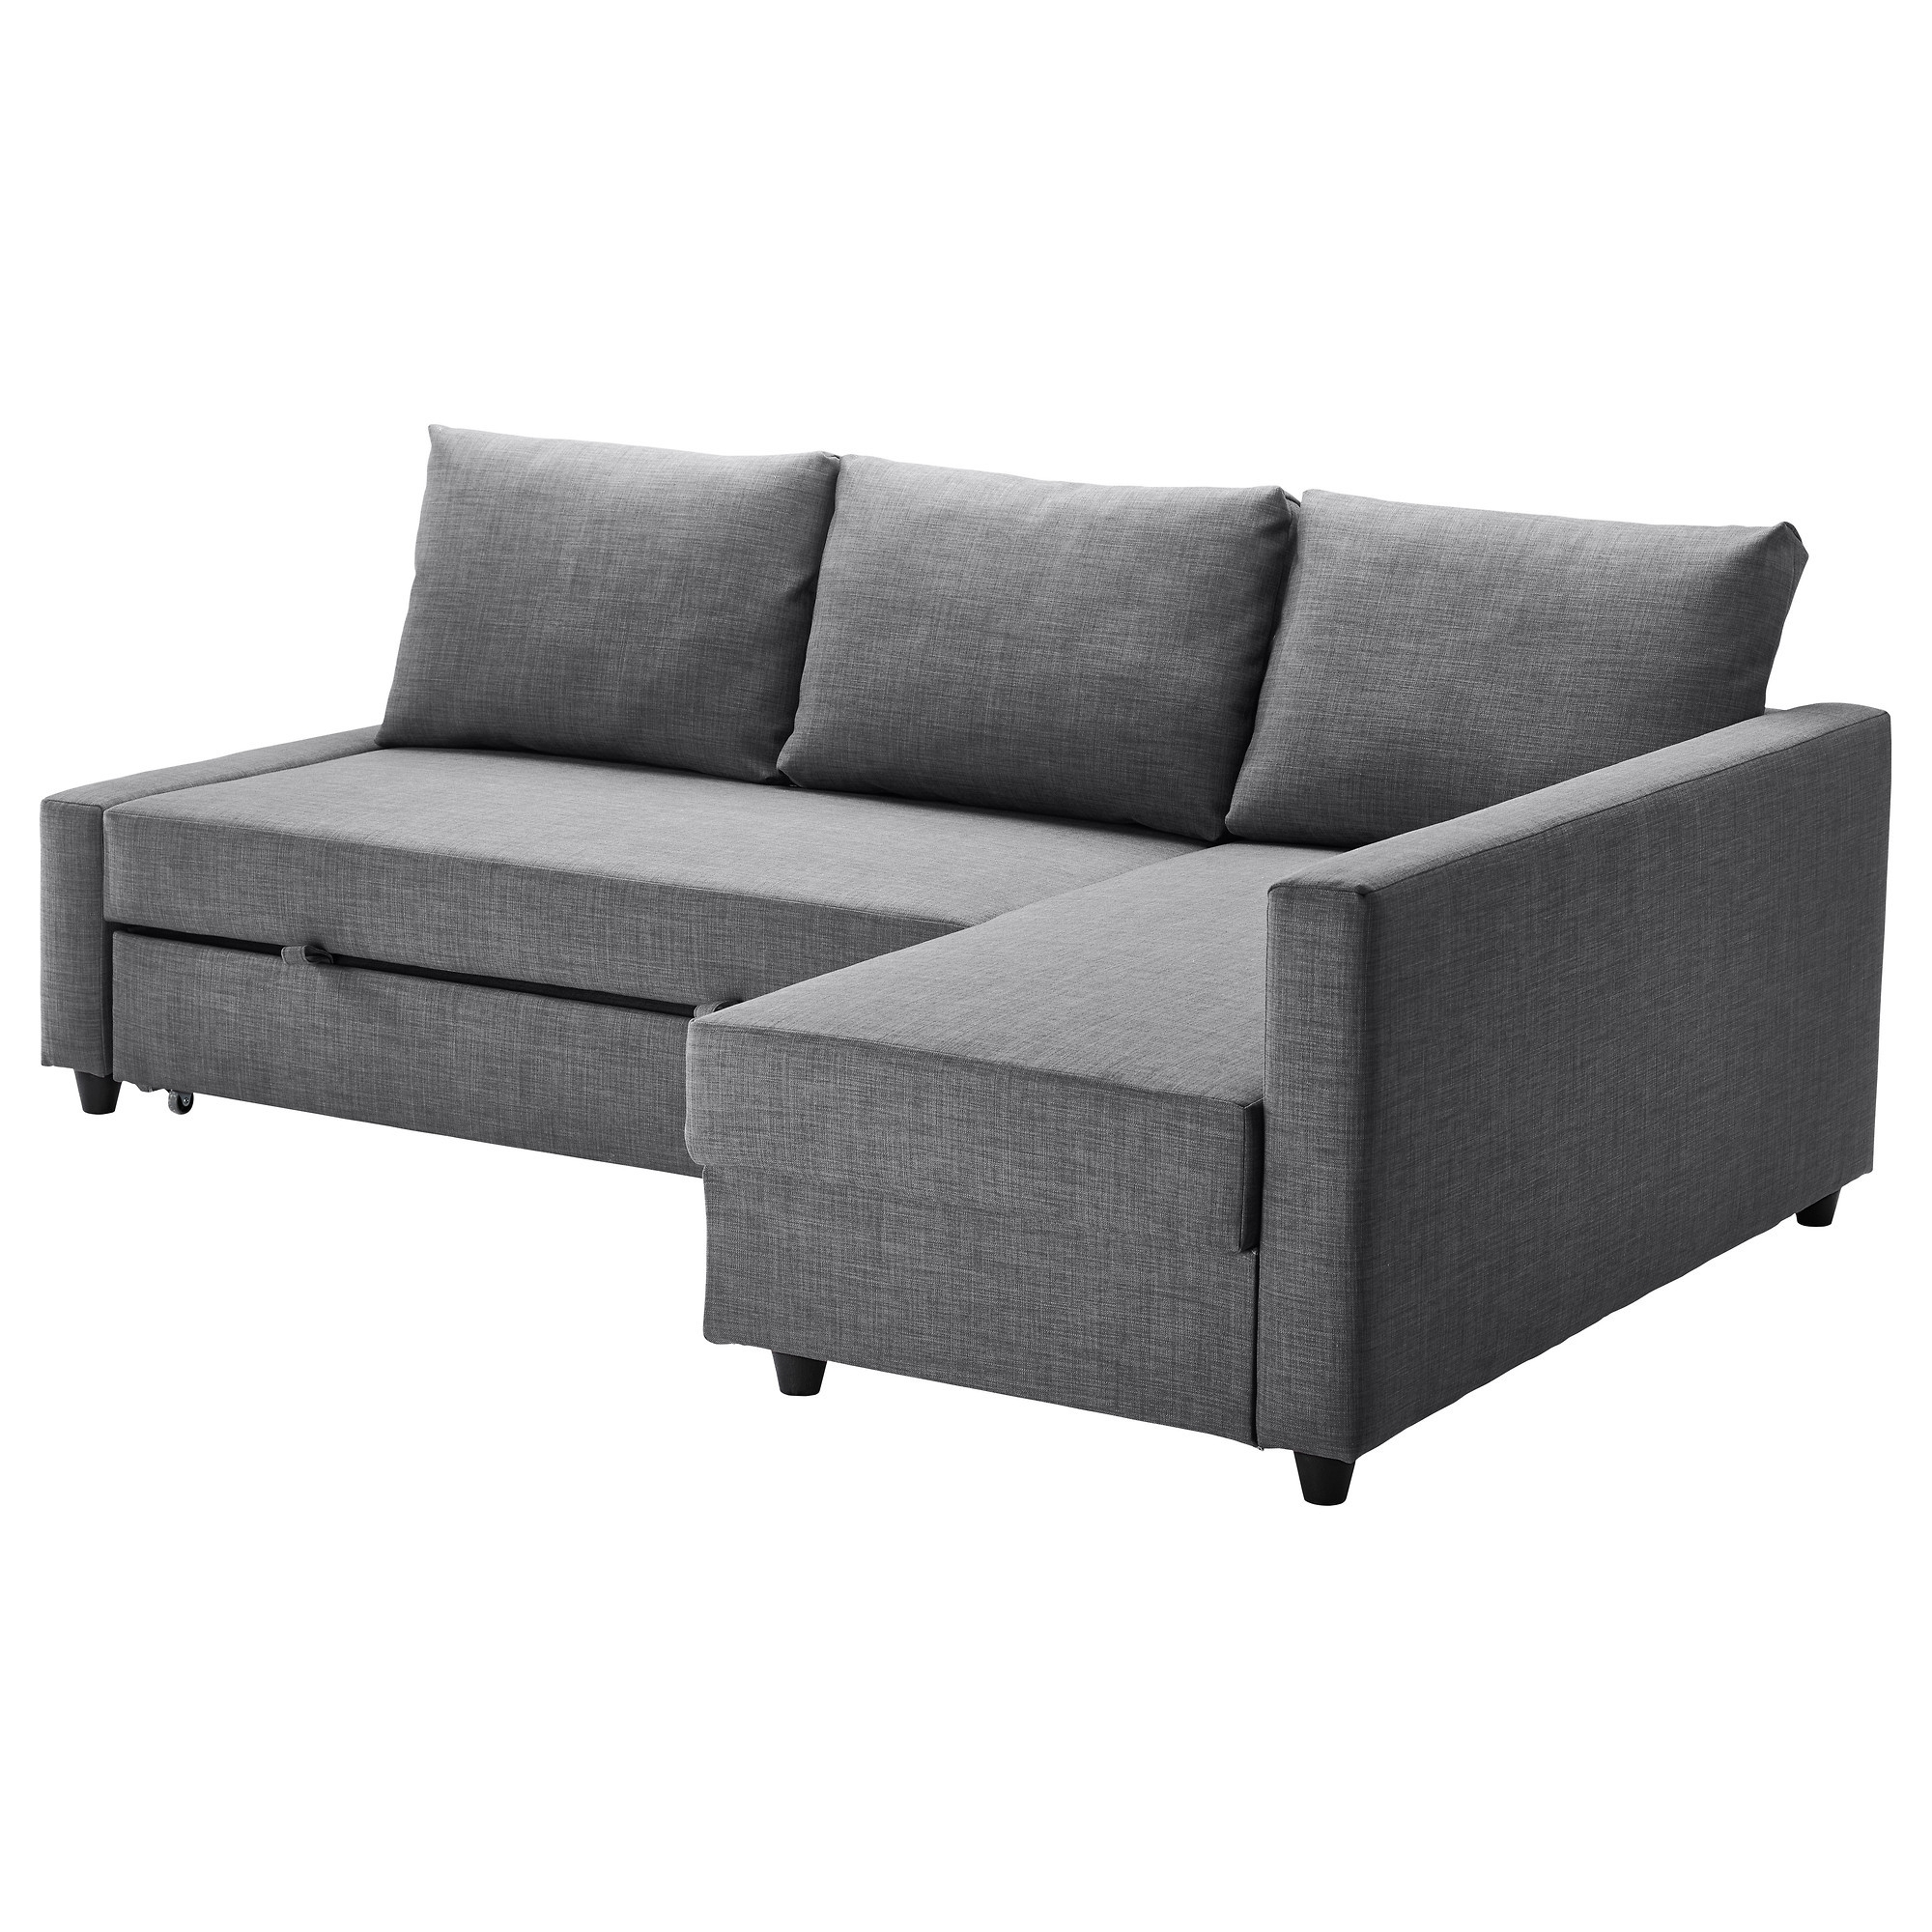 top 10 sleeper sofas throws on leather best ideas ikea sectional sofa